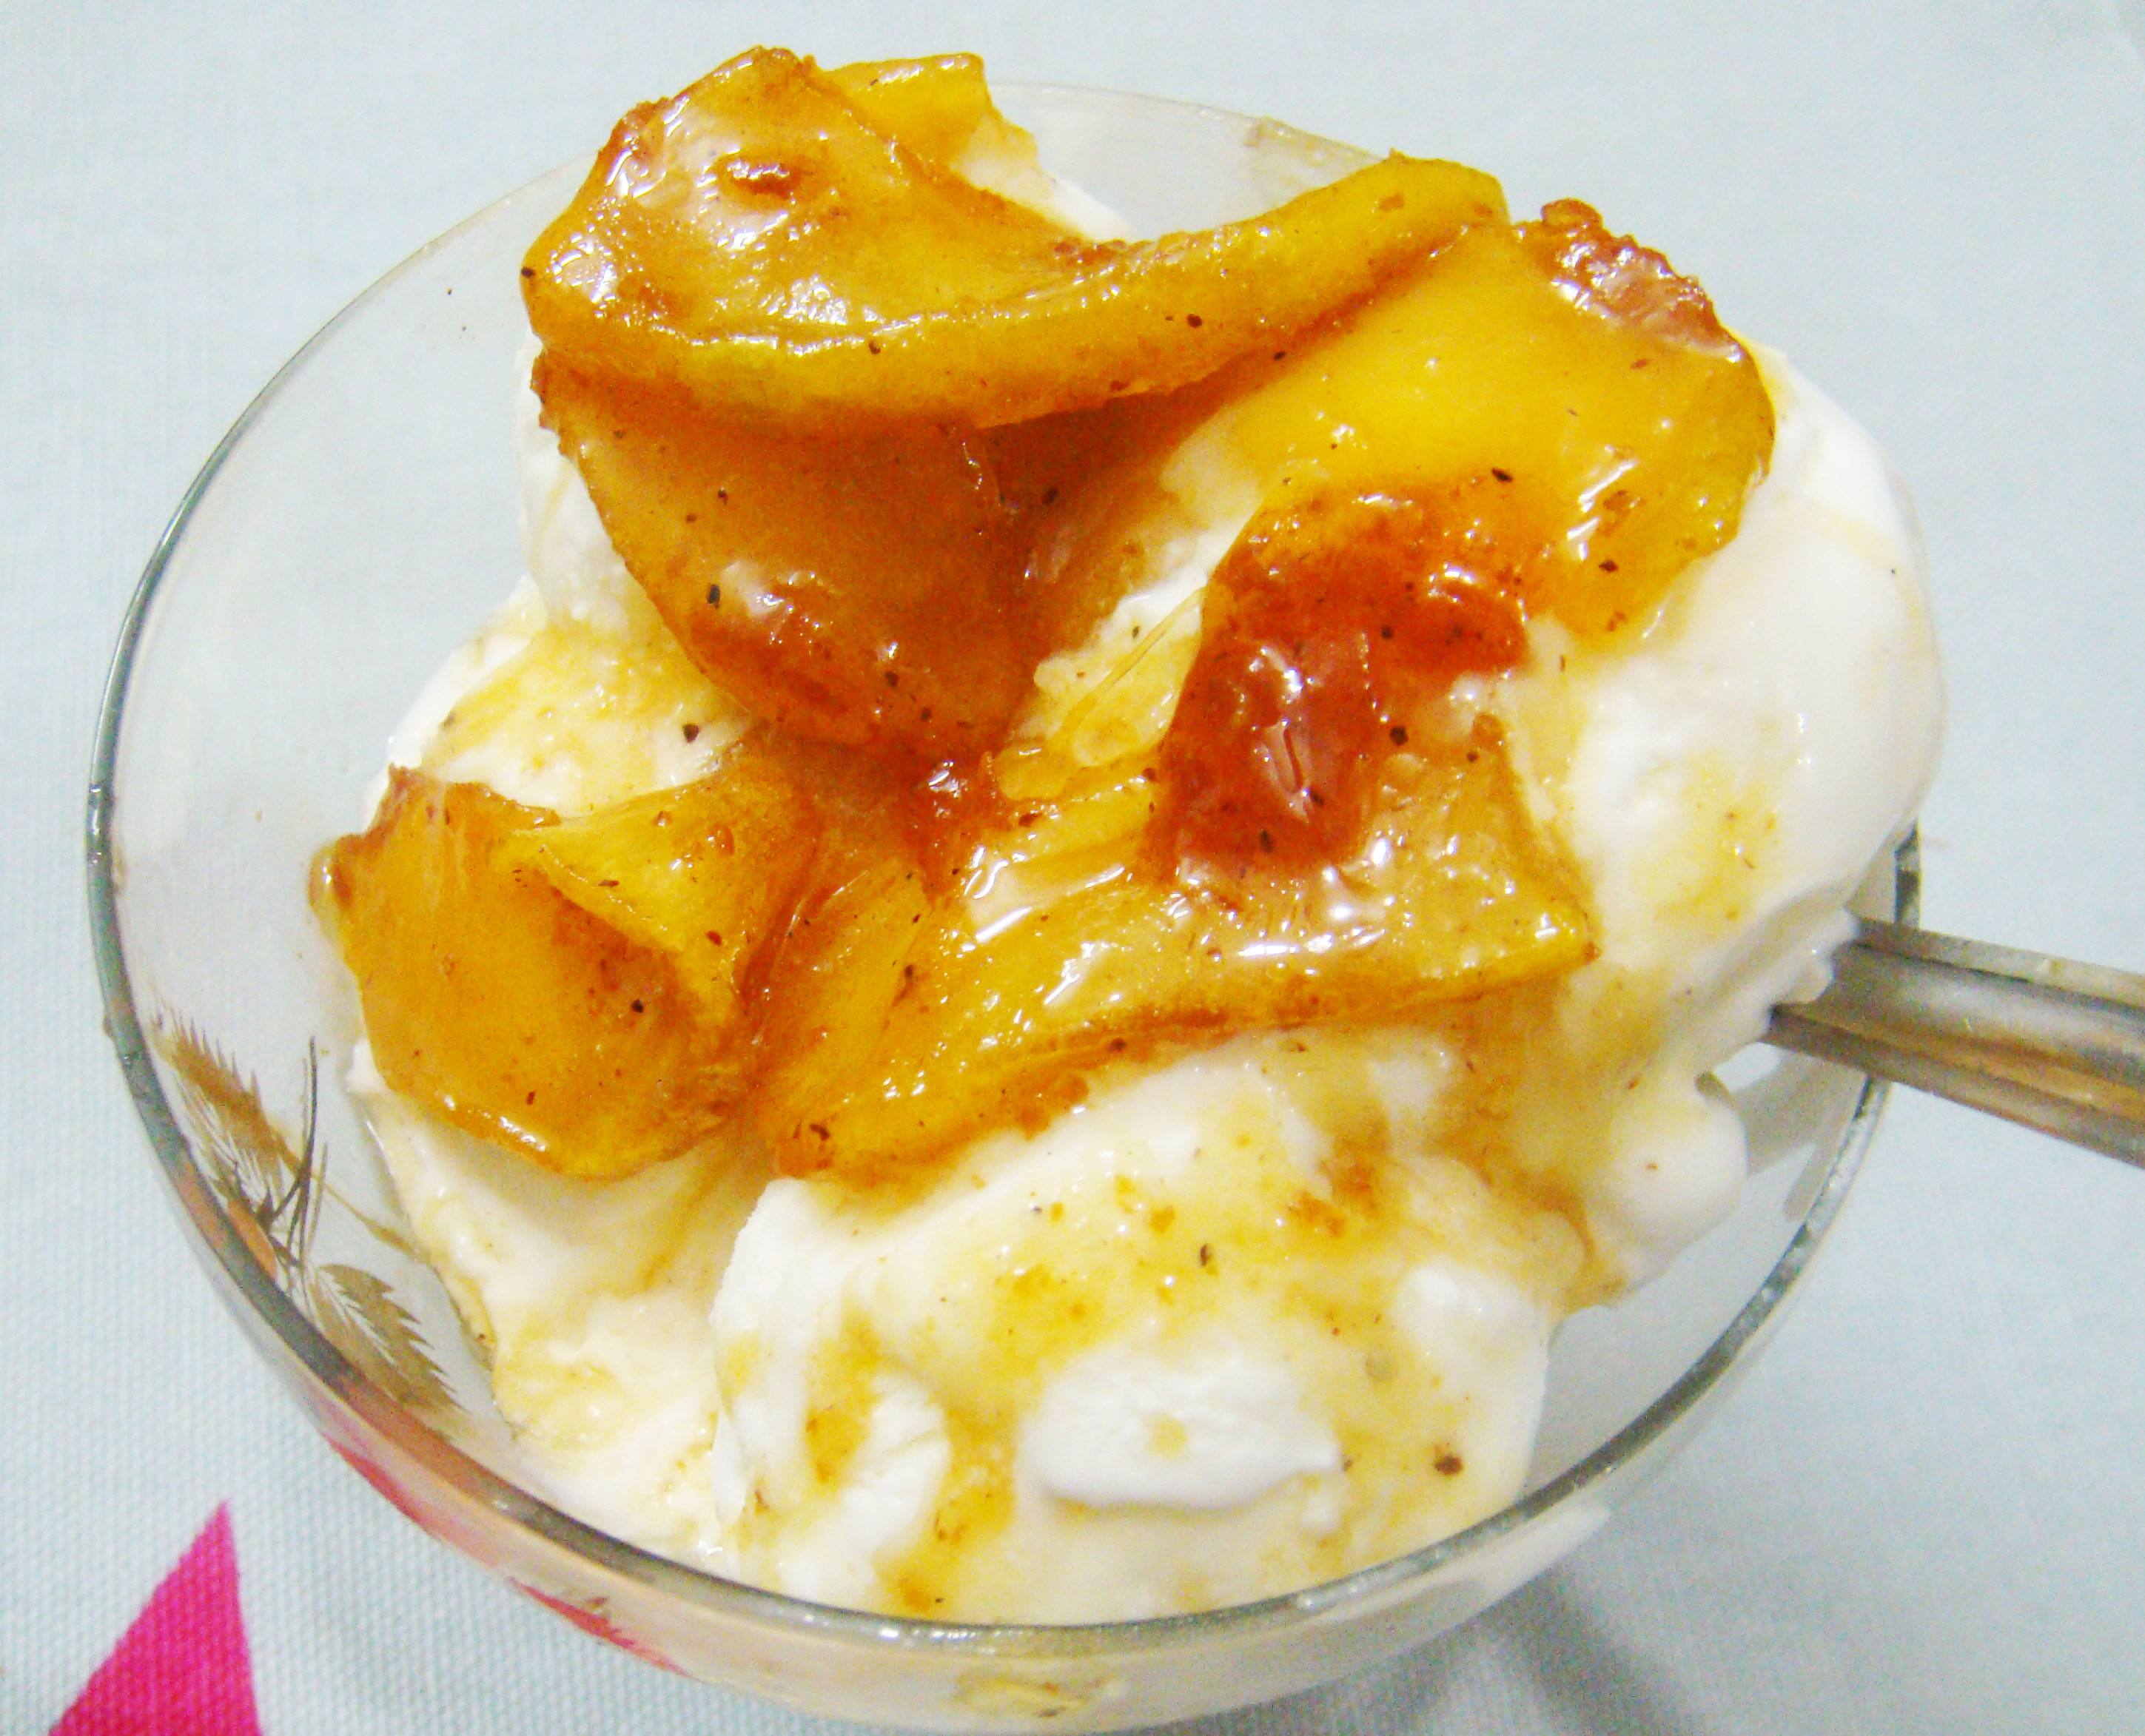 Healthy and Yummy Caramelized Apple bite